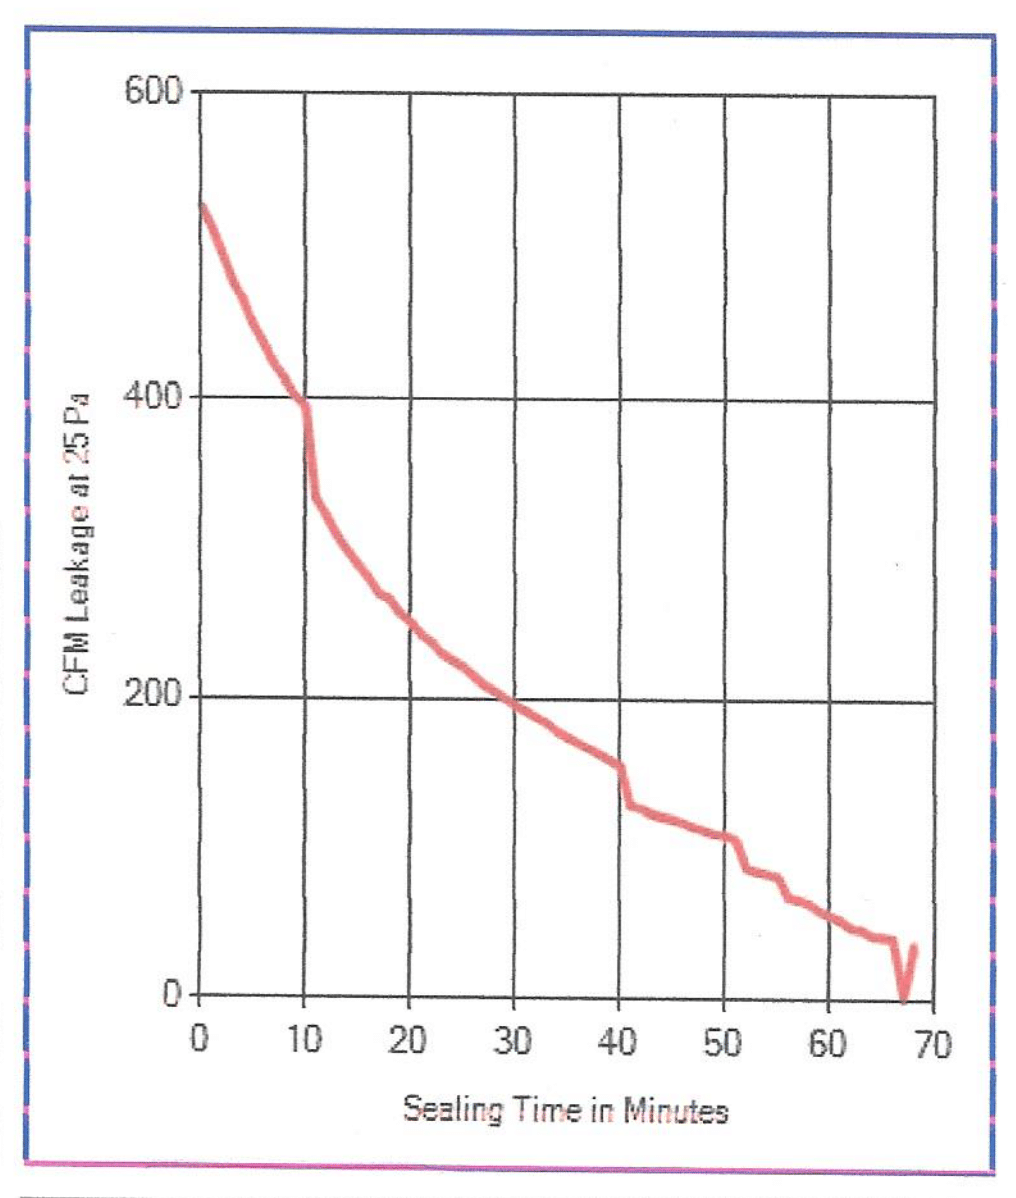 Graph of supply side air loss reduction